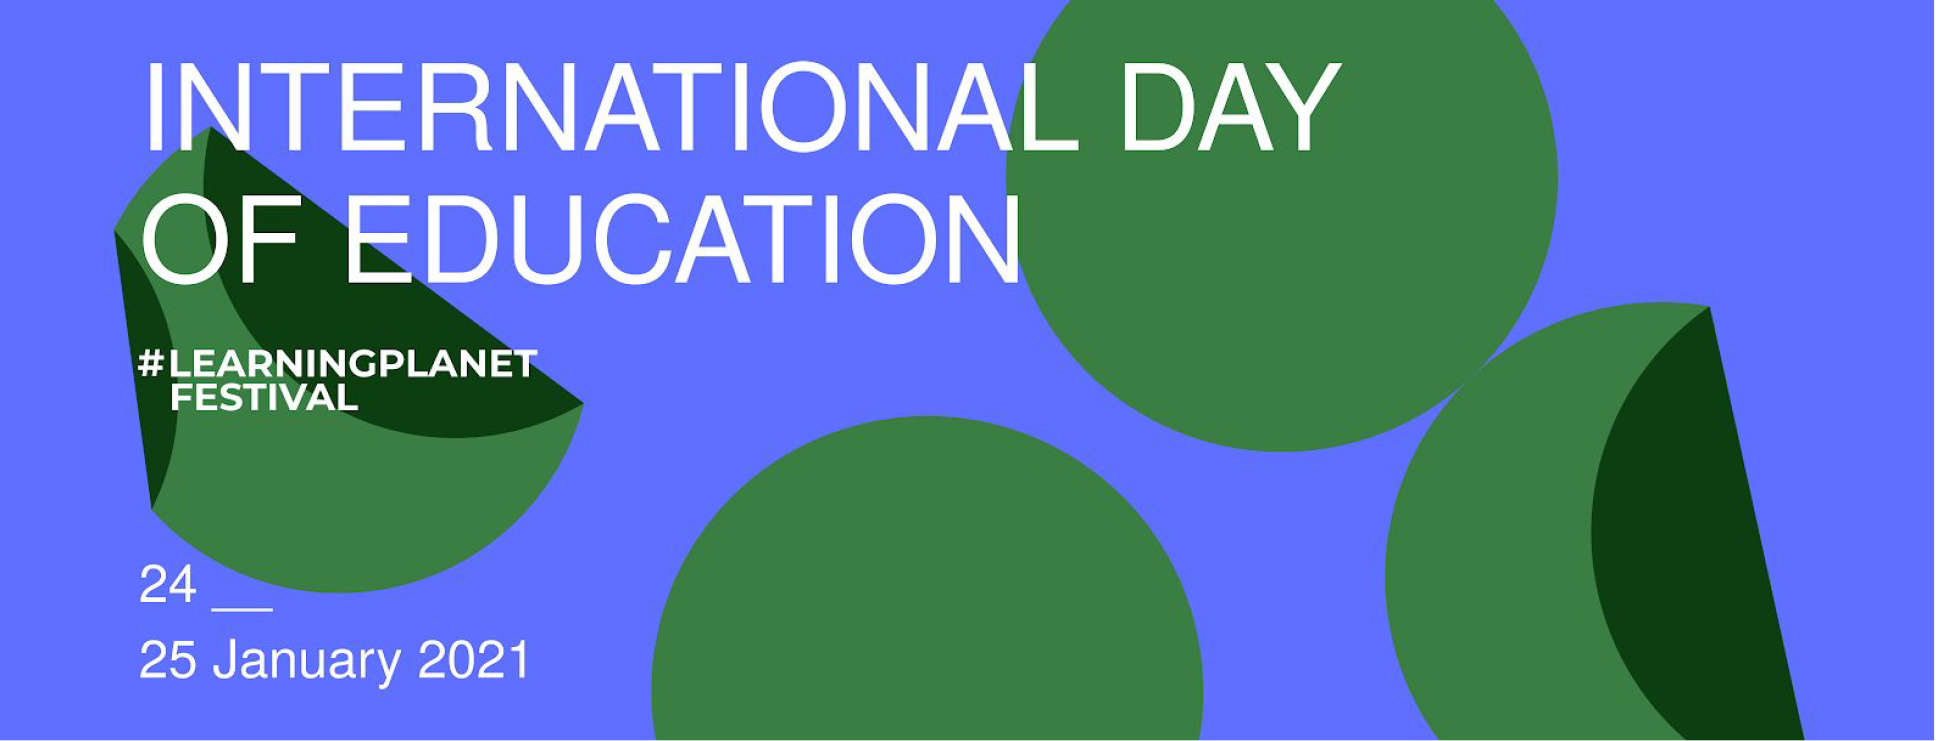 cri,-unesco-and-+500-partners-hosted-a-global-online-festival-for-international-day-of-education